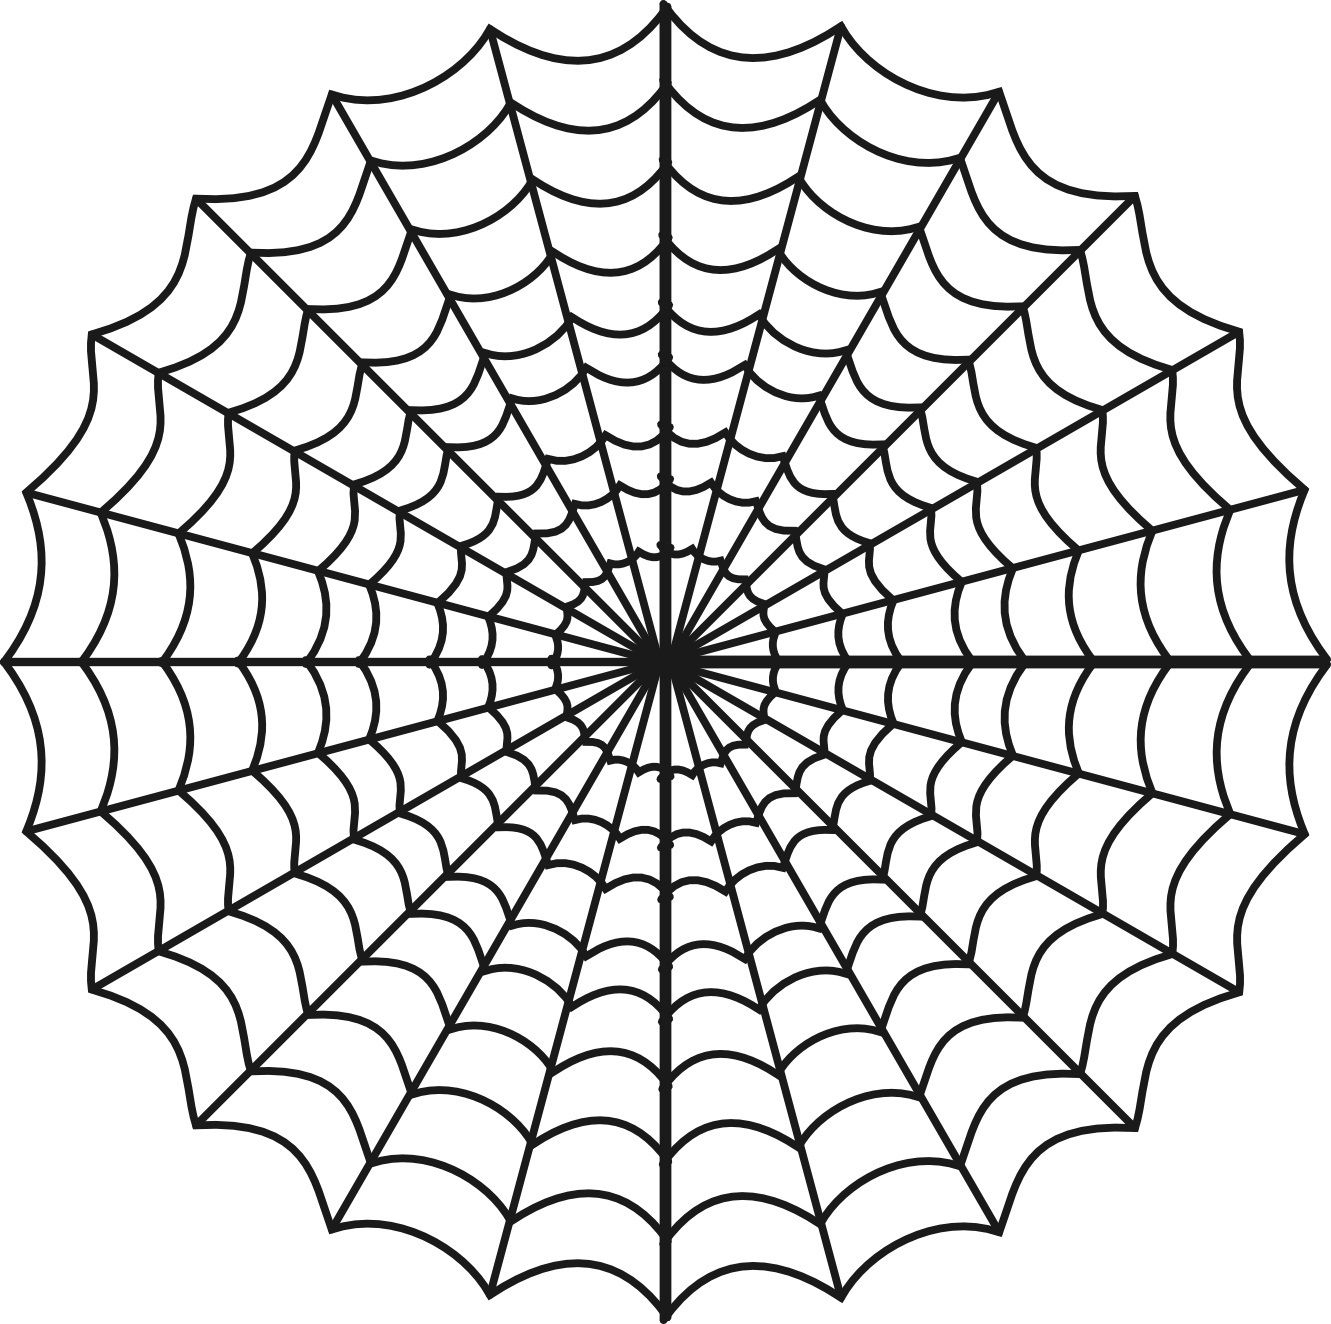 Free Printable Spider Web Coloring Pages For Kids Inside | Me - Free Printable Spider Web